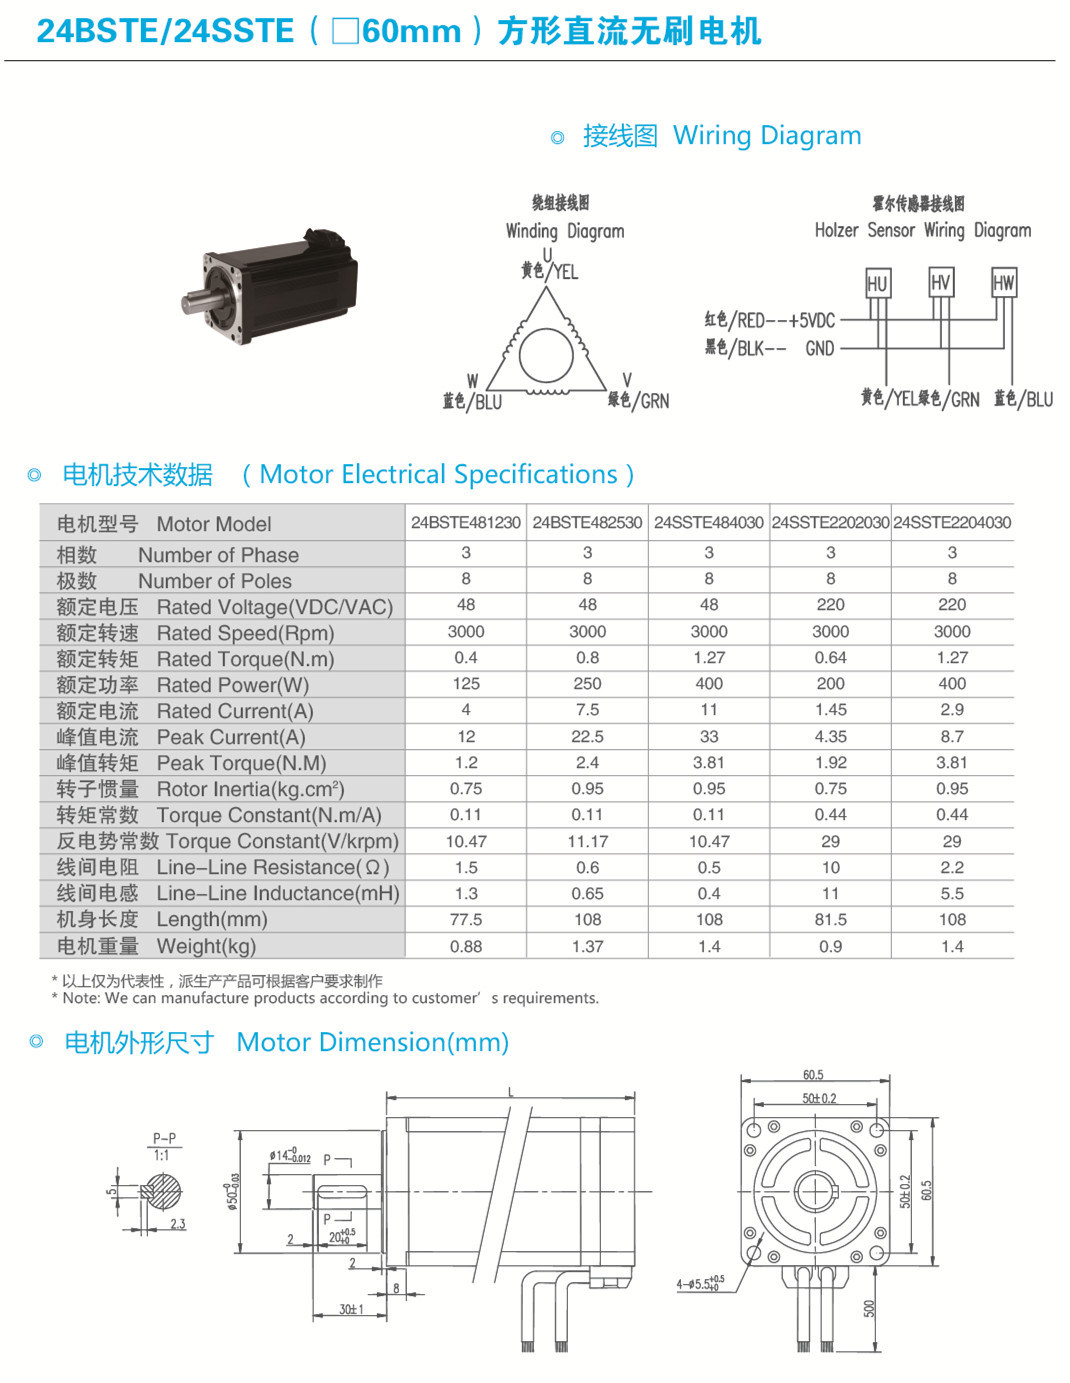 24bste481230 48vdc Bldc Motor For Textile Machine China Brushless Dc Wiring Diagram Baolongs Is An Innovative Combination Of High Technology From Domestic And Abroad It Has Lower Noise Smaller Vibration Longer